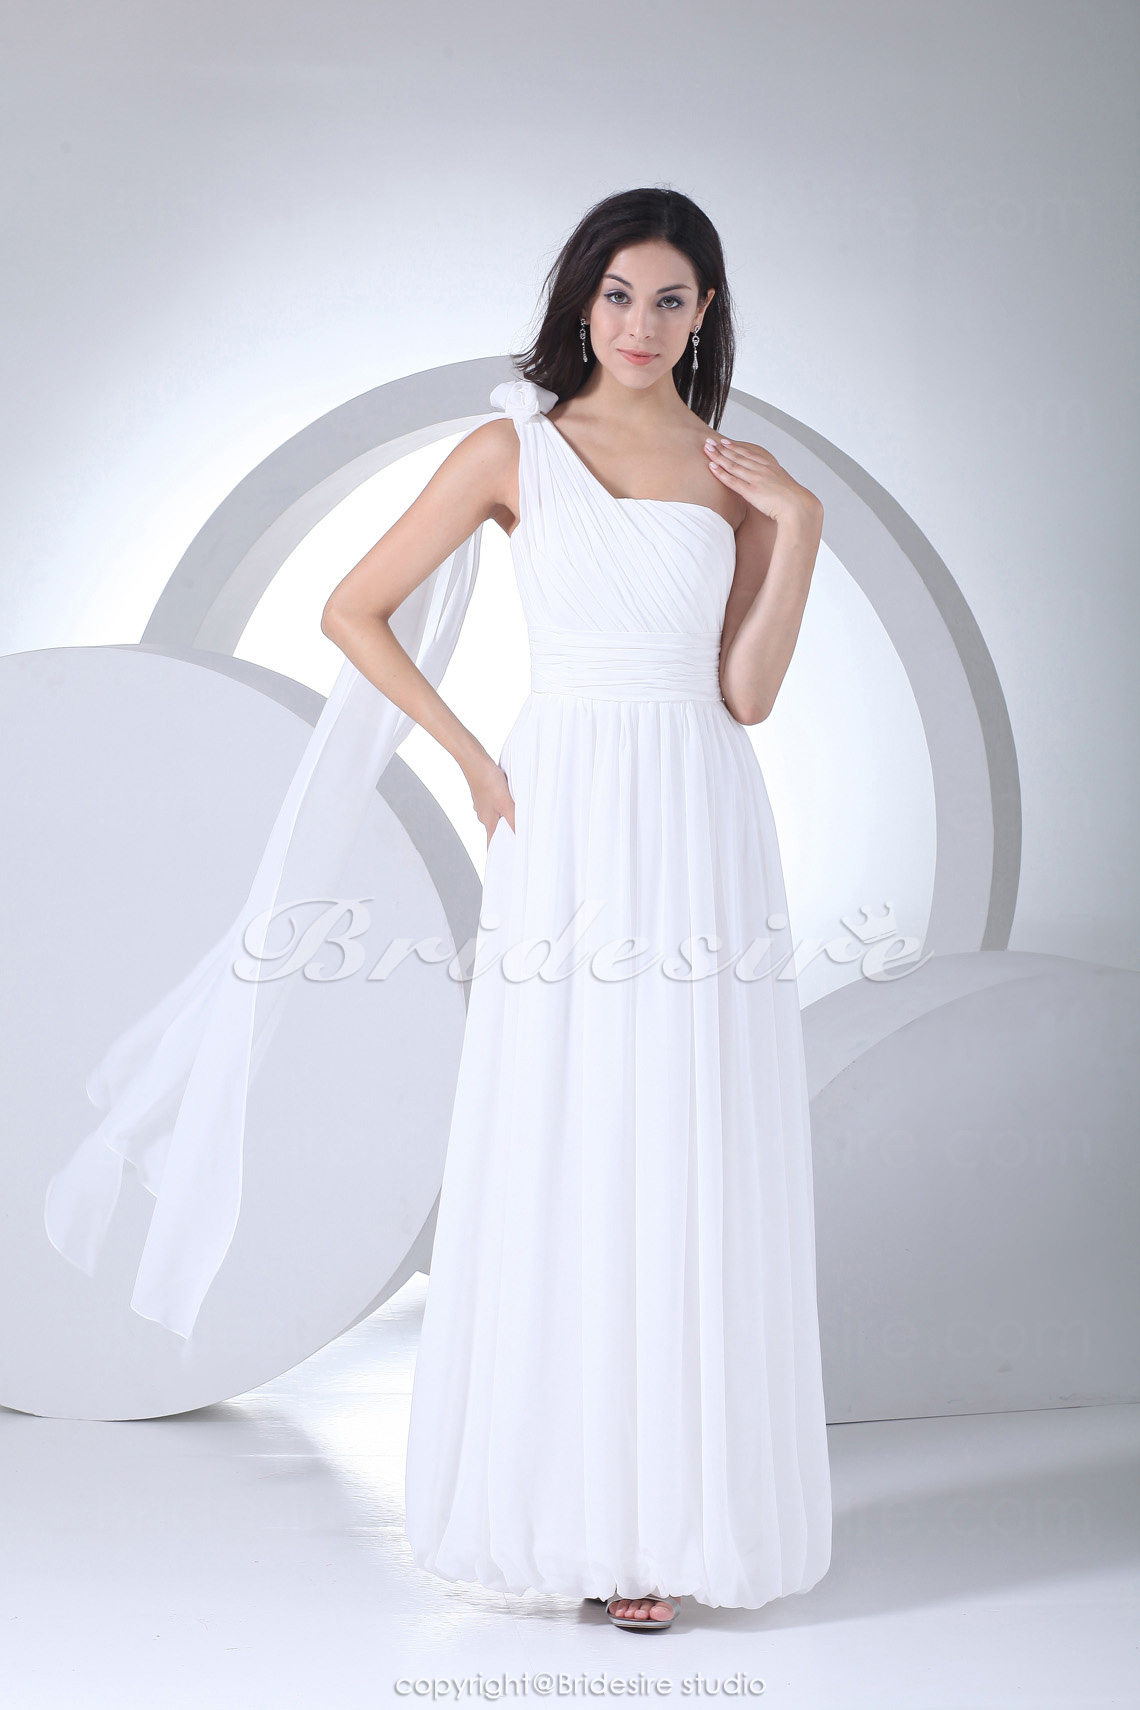 Sheath/Column One Shoulder Floor-length Sleeveless Chiffon Wedding Dress